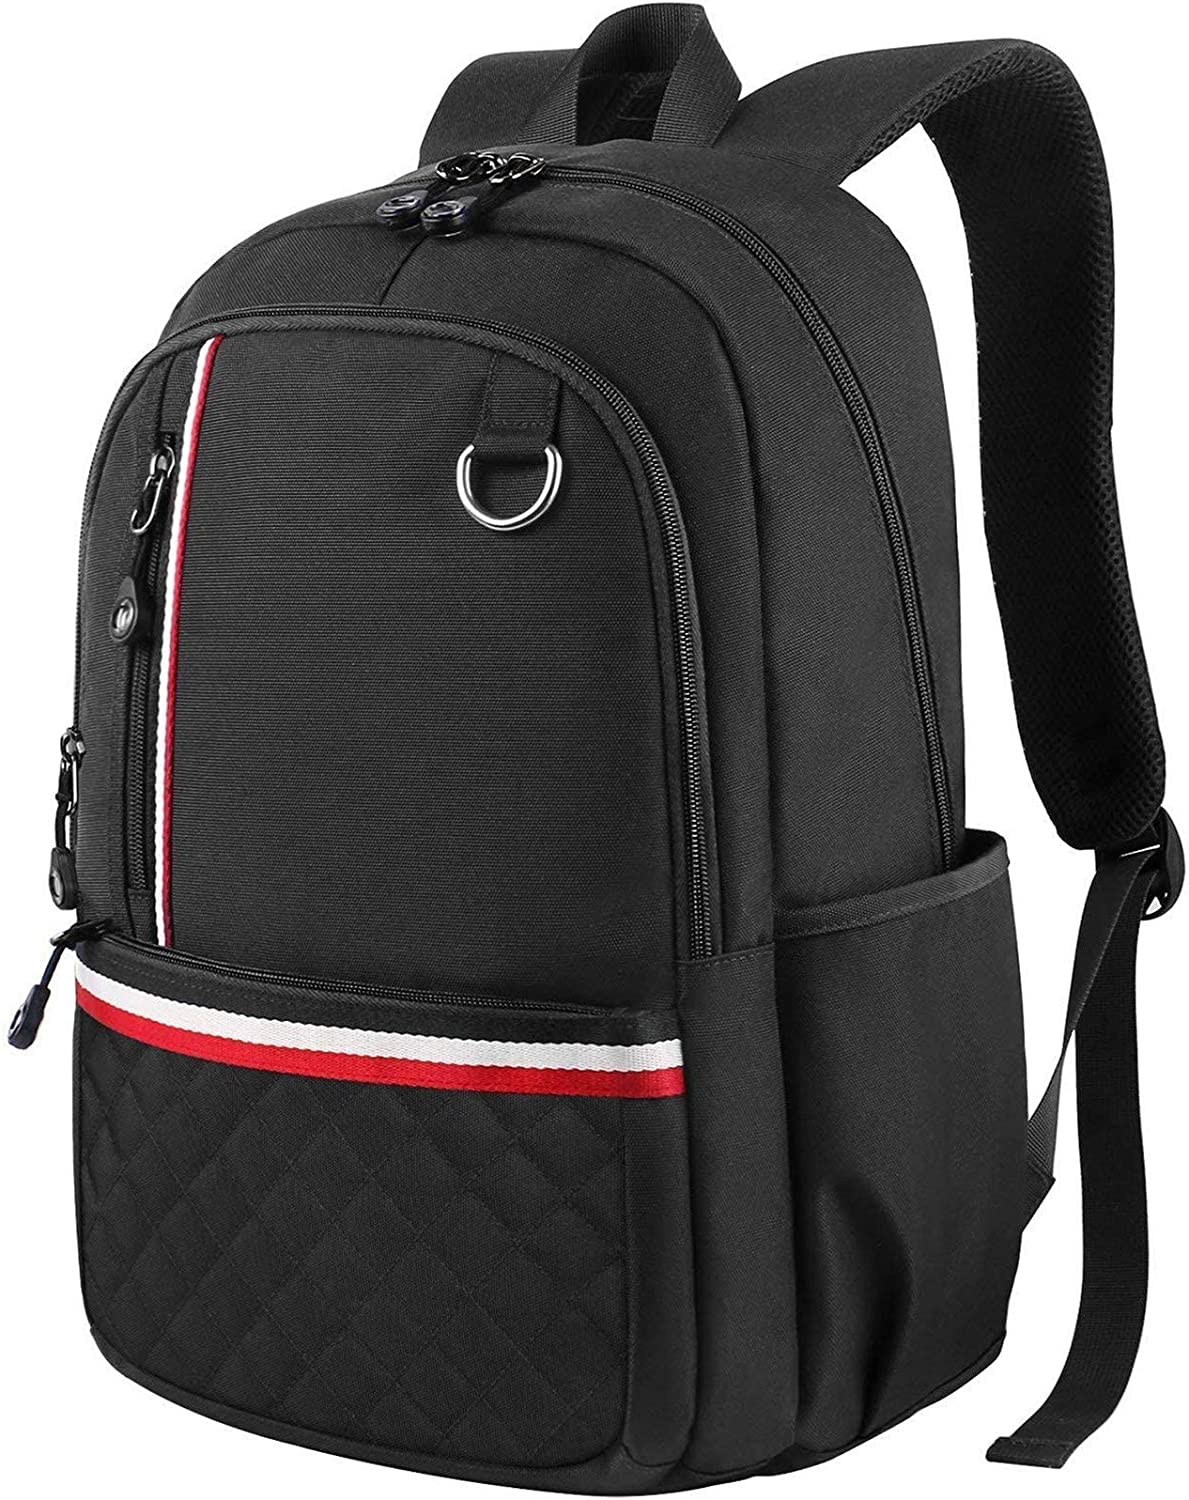 School Backpack For Teen Girls Boys, Lightweight Laptop Backpack Water-Resistant Slim School Bookbag for Elementary High School Middle School College Students, Fits 14 inch Laptop-Black